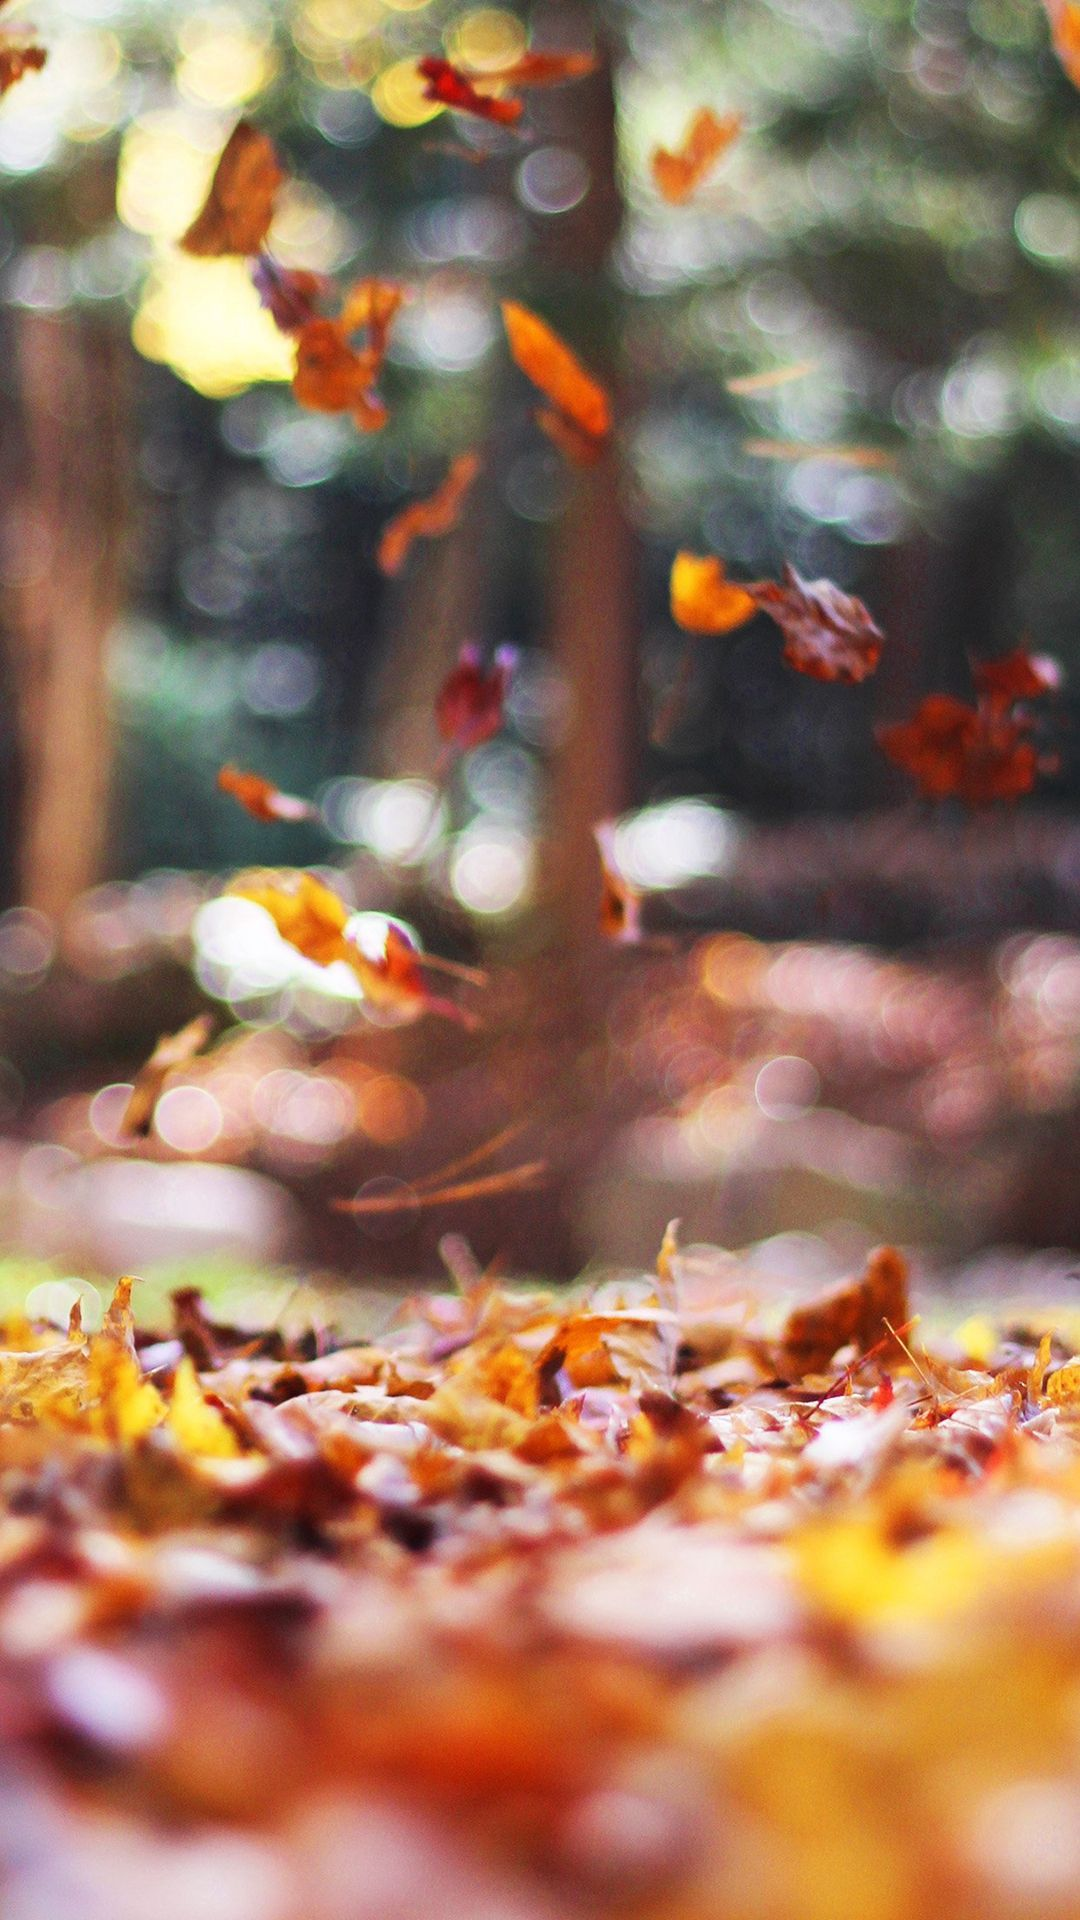 fall iphone background, fall iphone 5 wallpaper